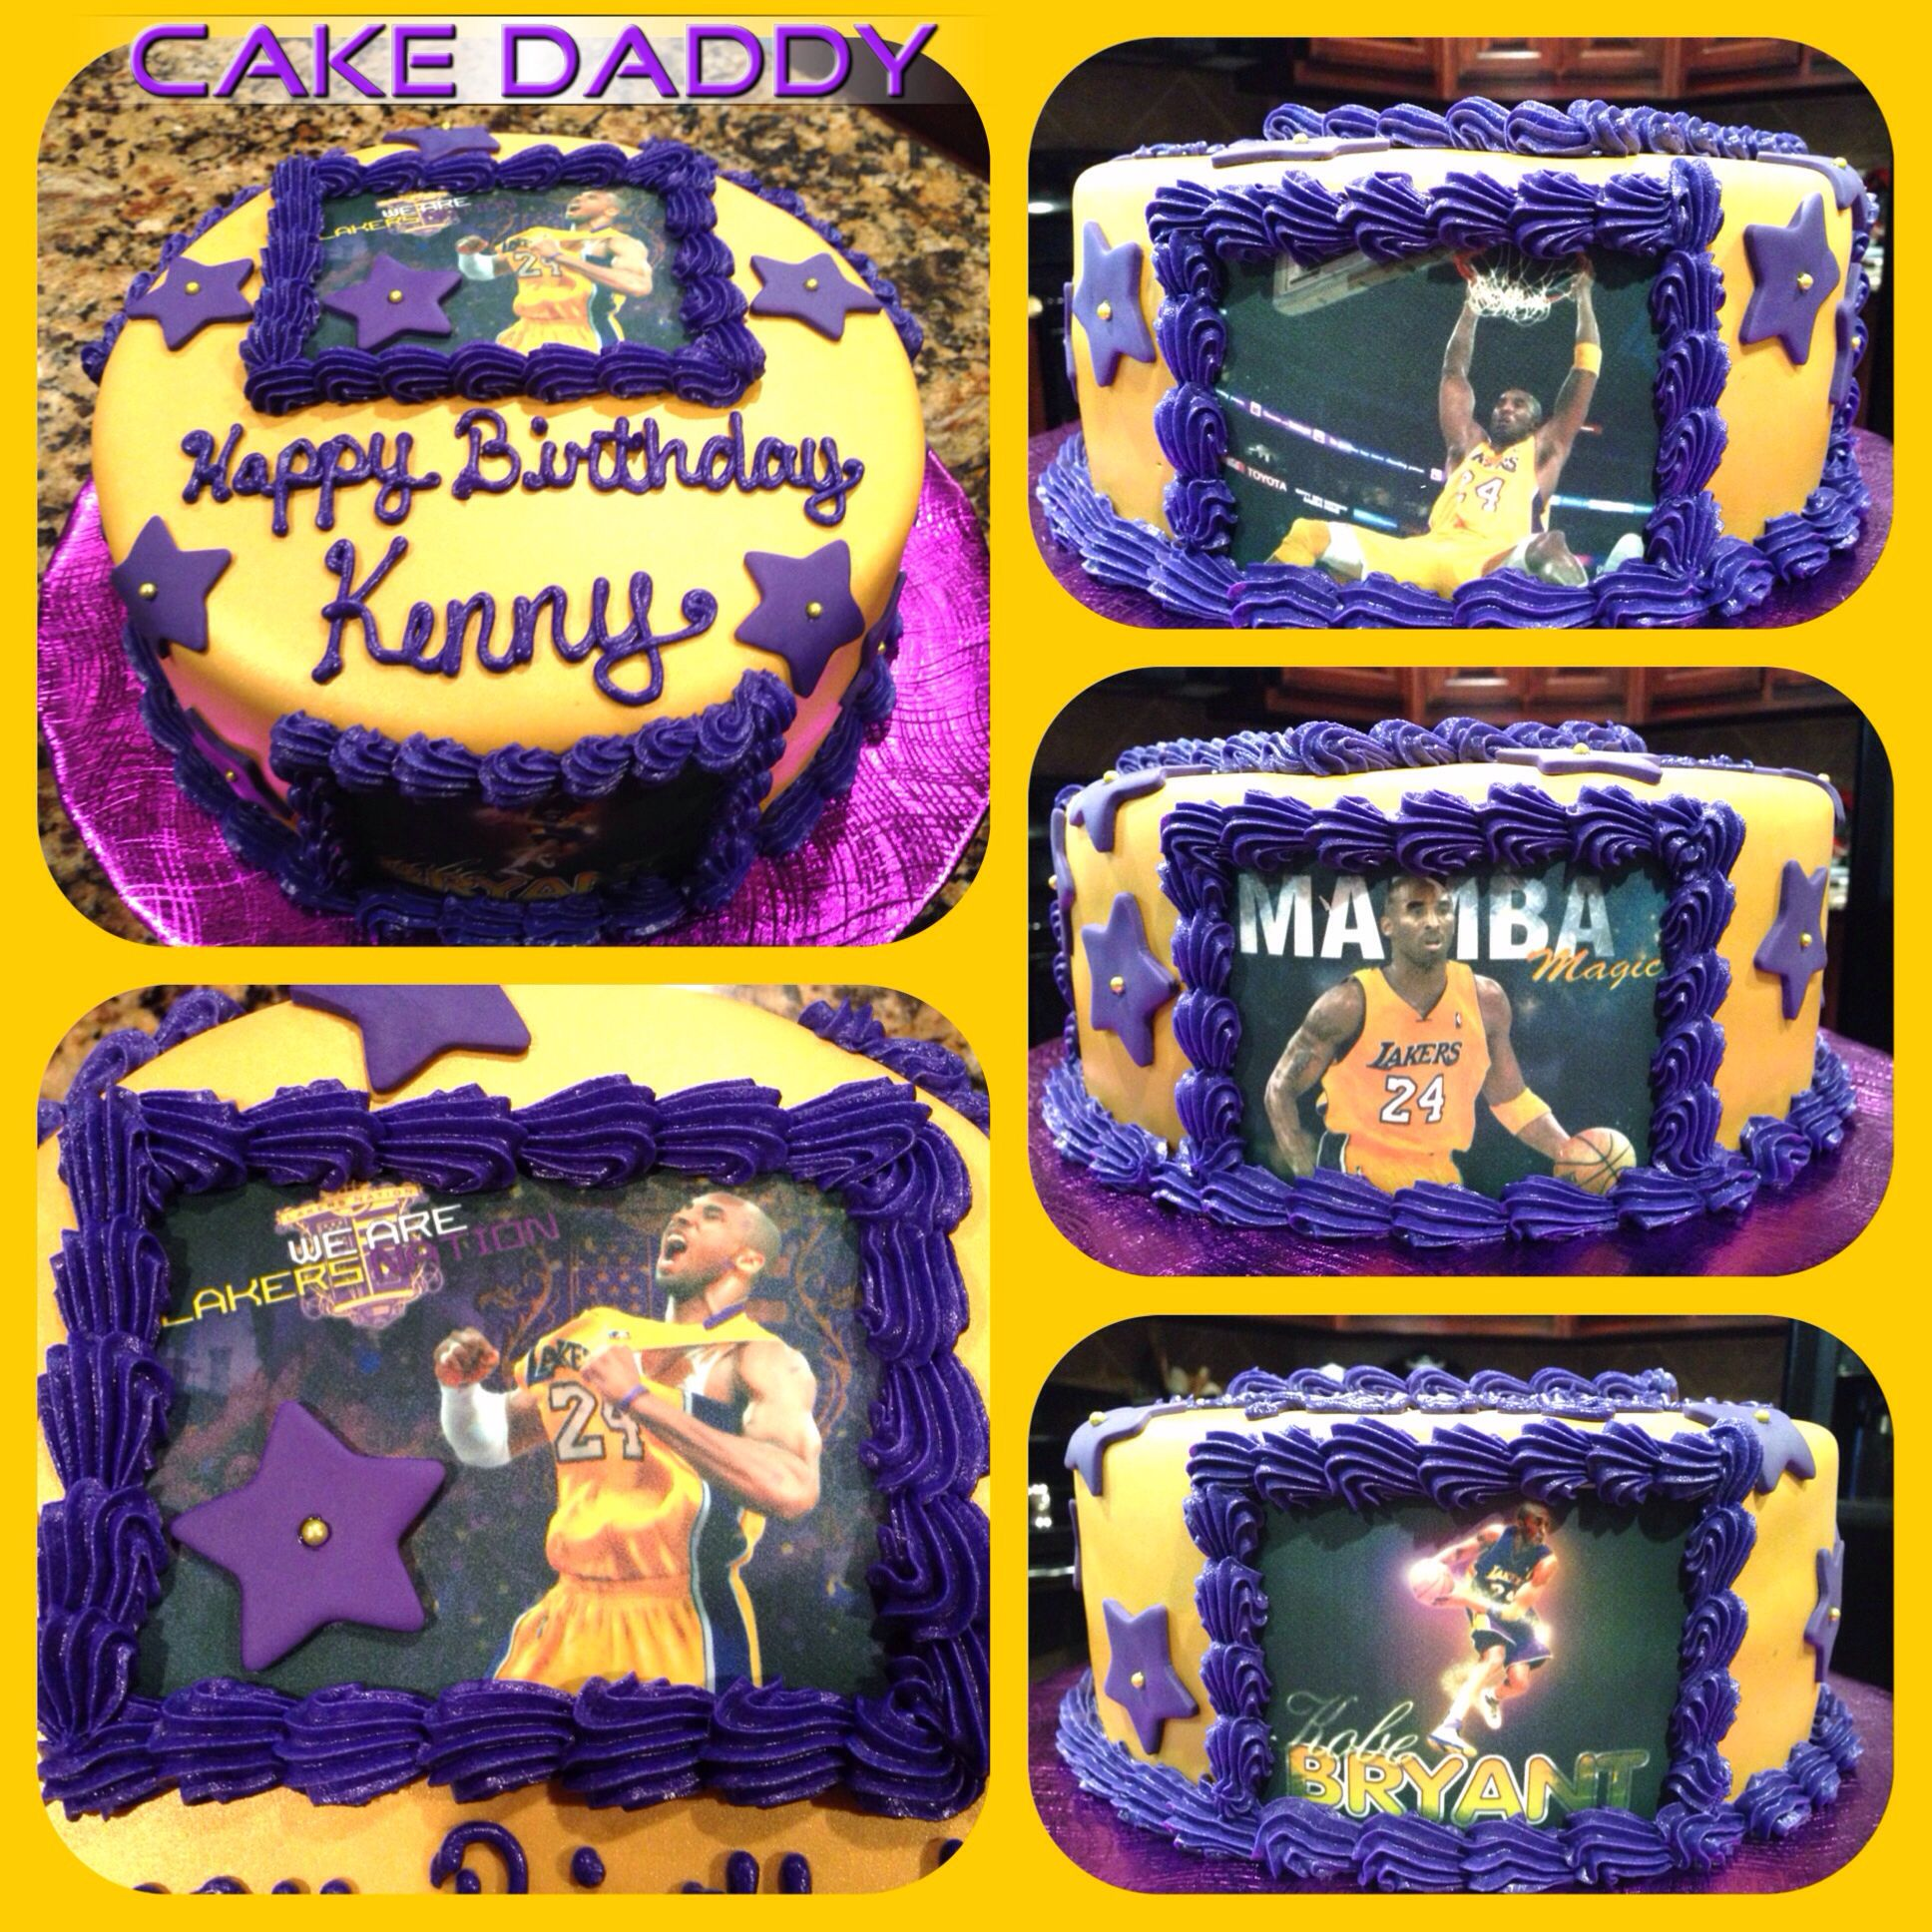 Kobe Bryant birthday cake Custom Cakes by Cake Daddy